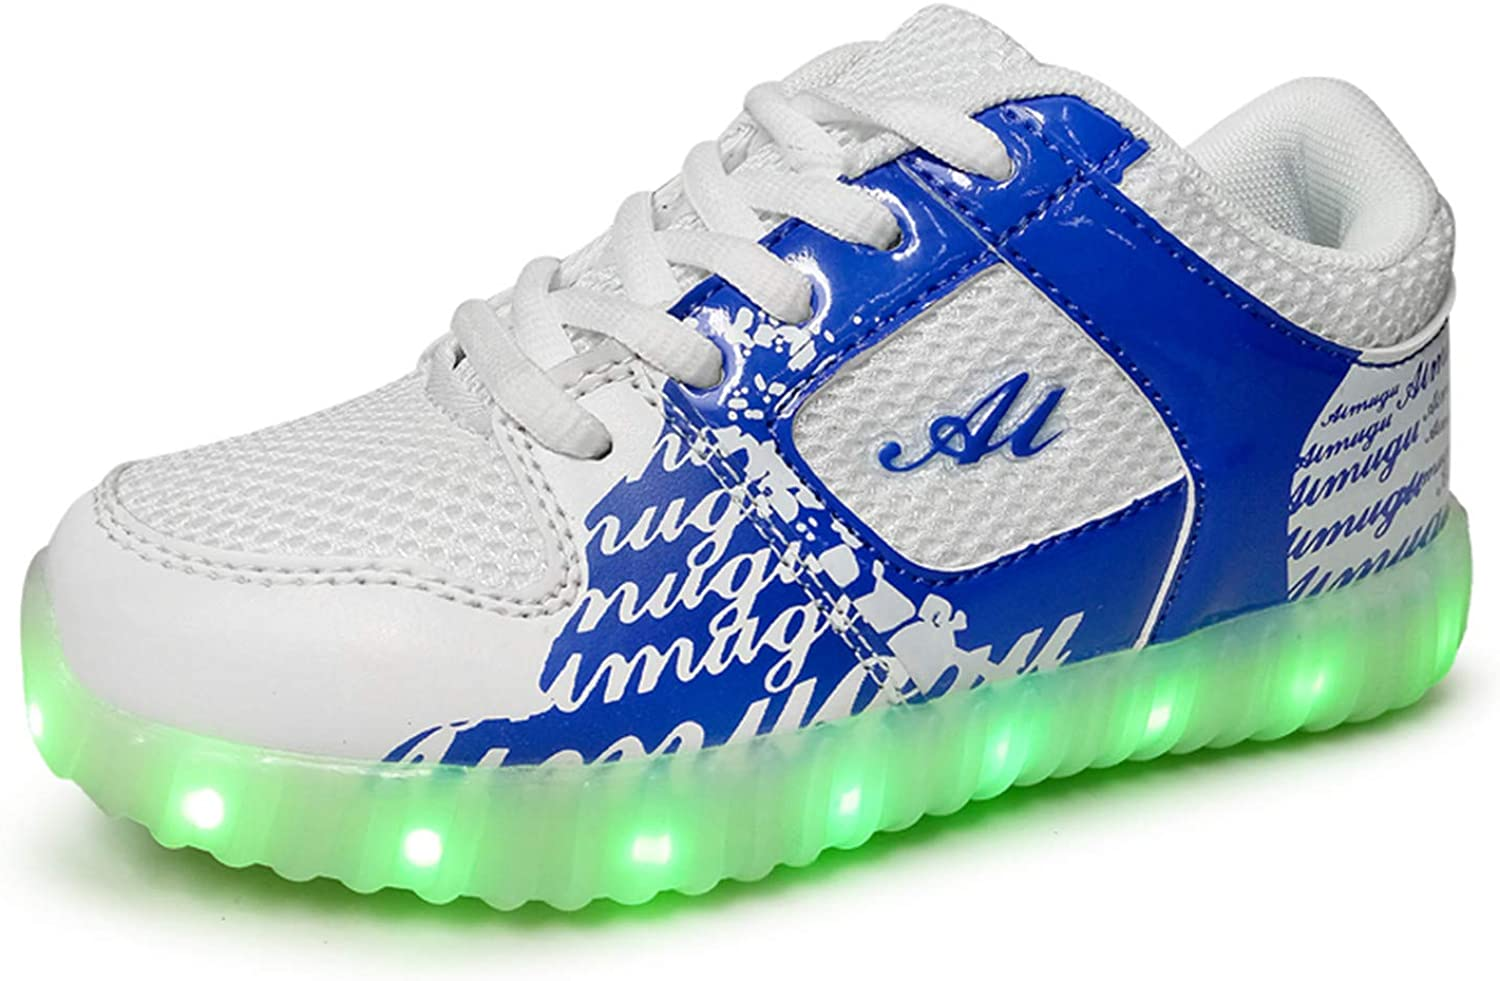 Led Luminous shoes for Boys Girls Fashion Light Up Casual Kids 7 colors USB Charge New Simulation Sole Gl